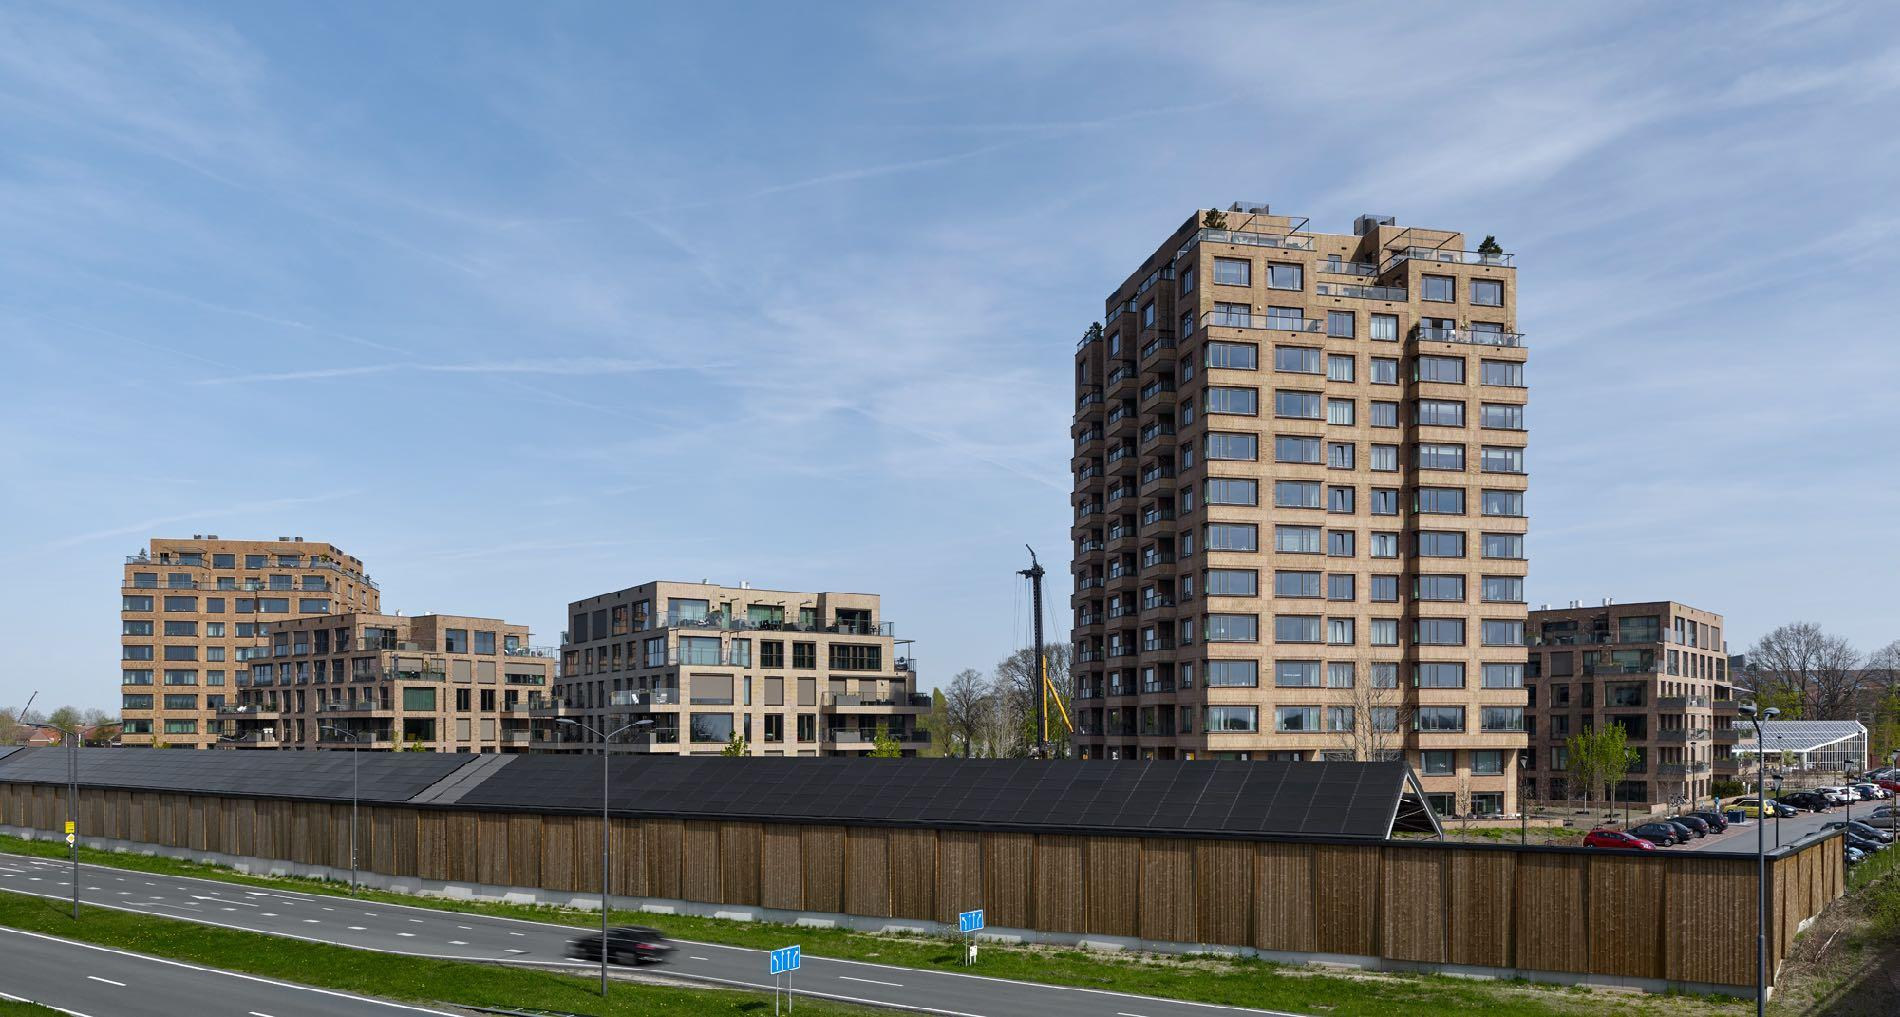 Urban Villa's 1a Willemspoort Den Bosch - office winhov